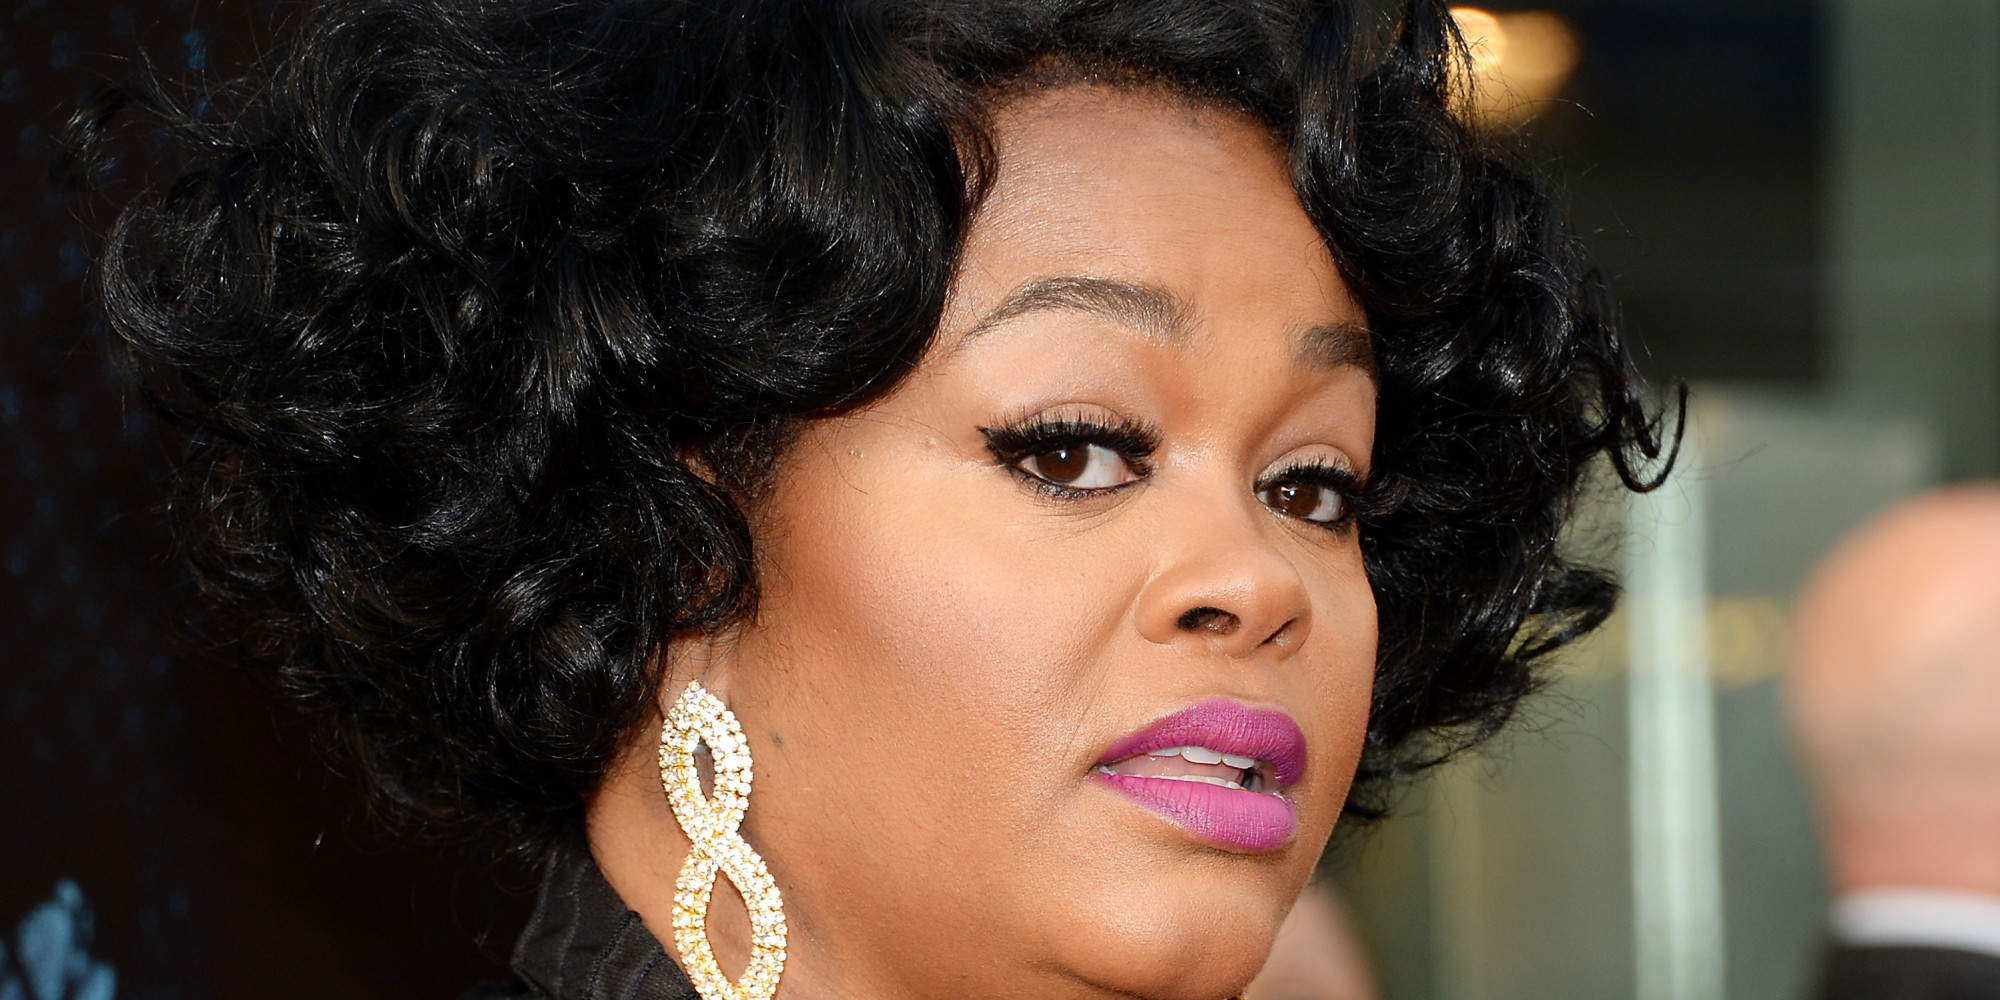 Leaked: Singer Jill Scott Nude Photos Out | Entertainment